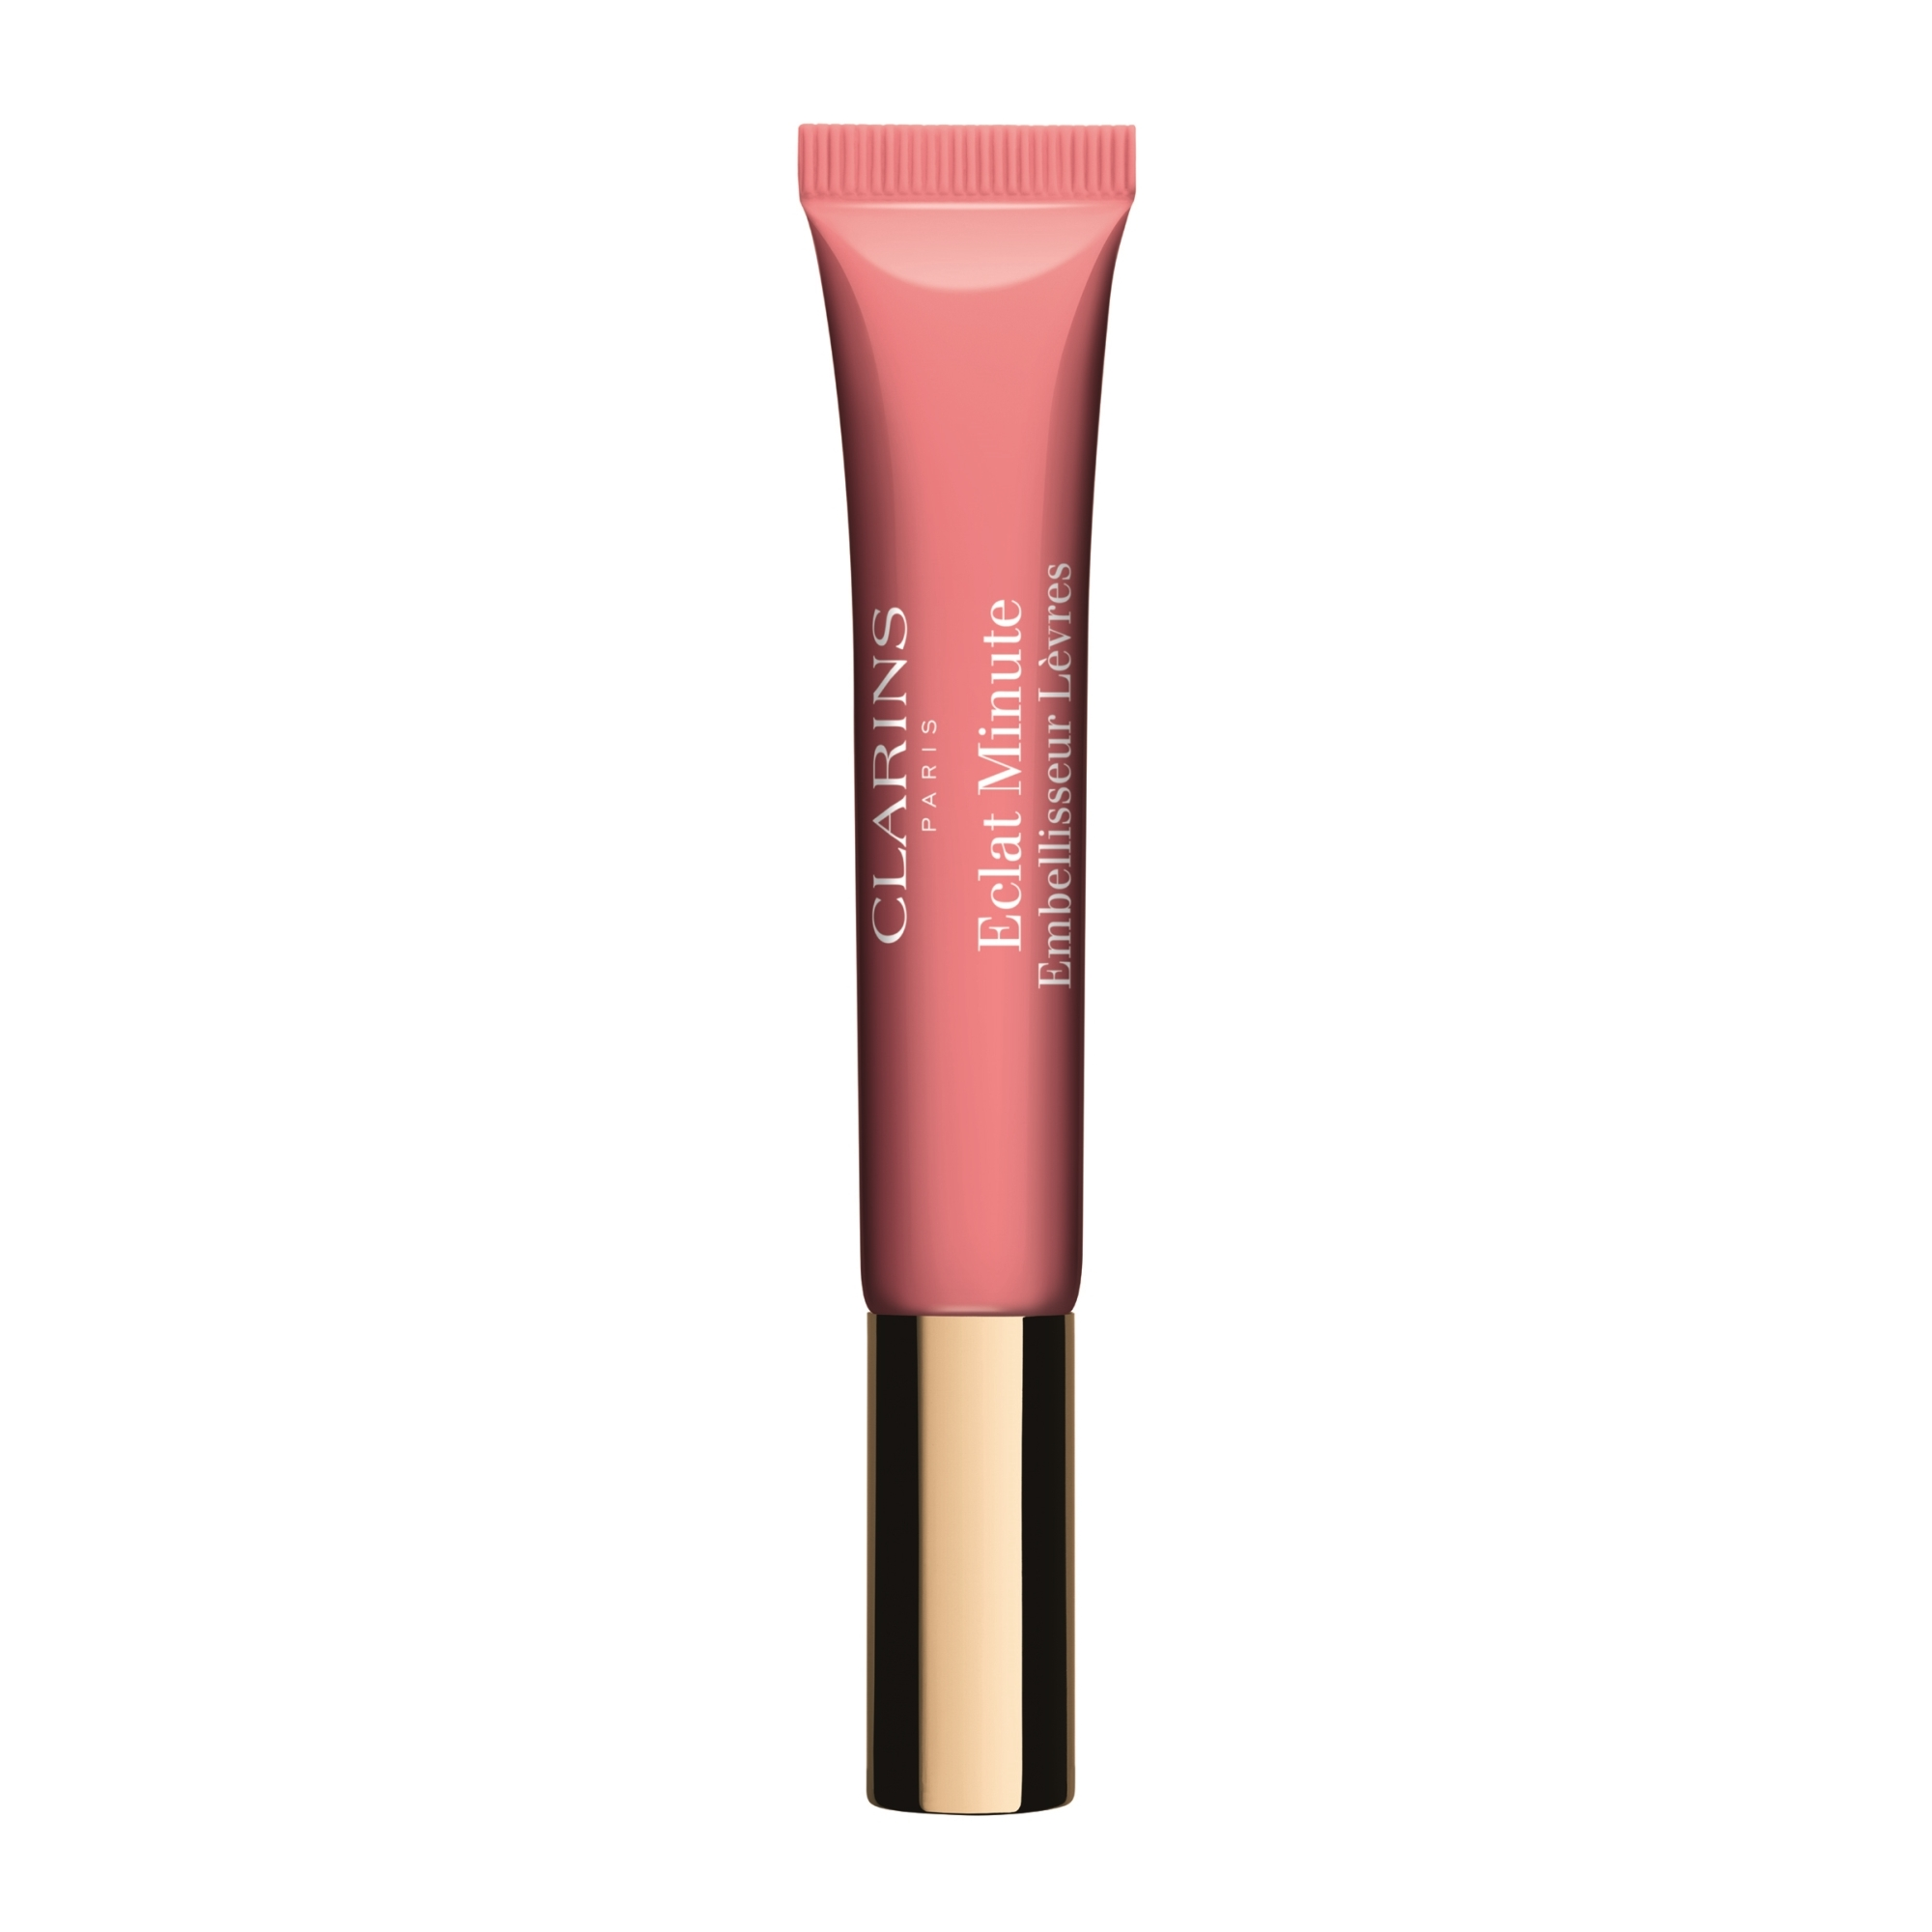 Instant Light Natural Lip Perfector 01 Rose Shimmer